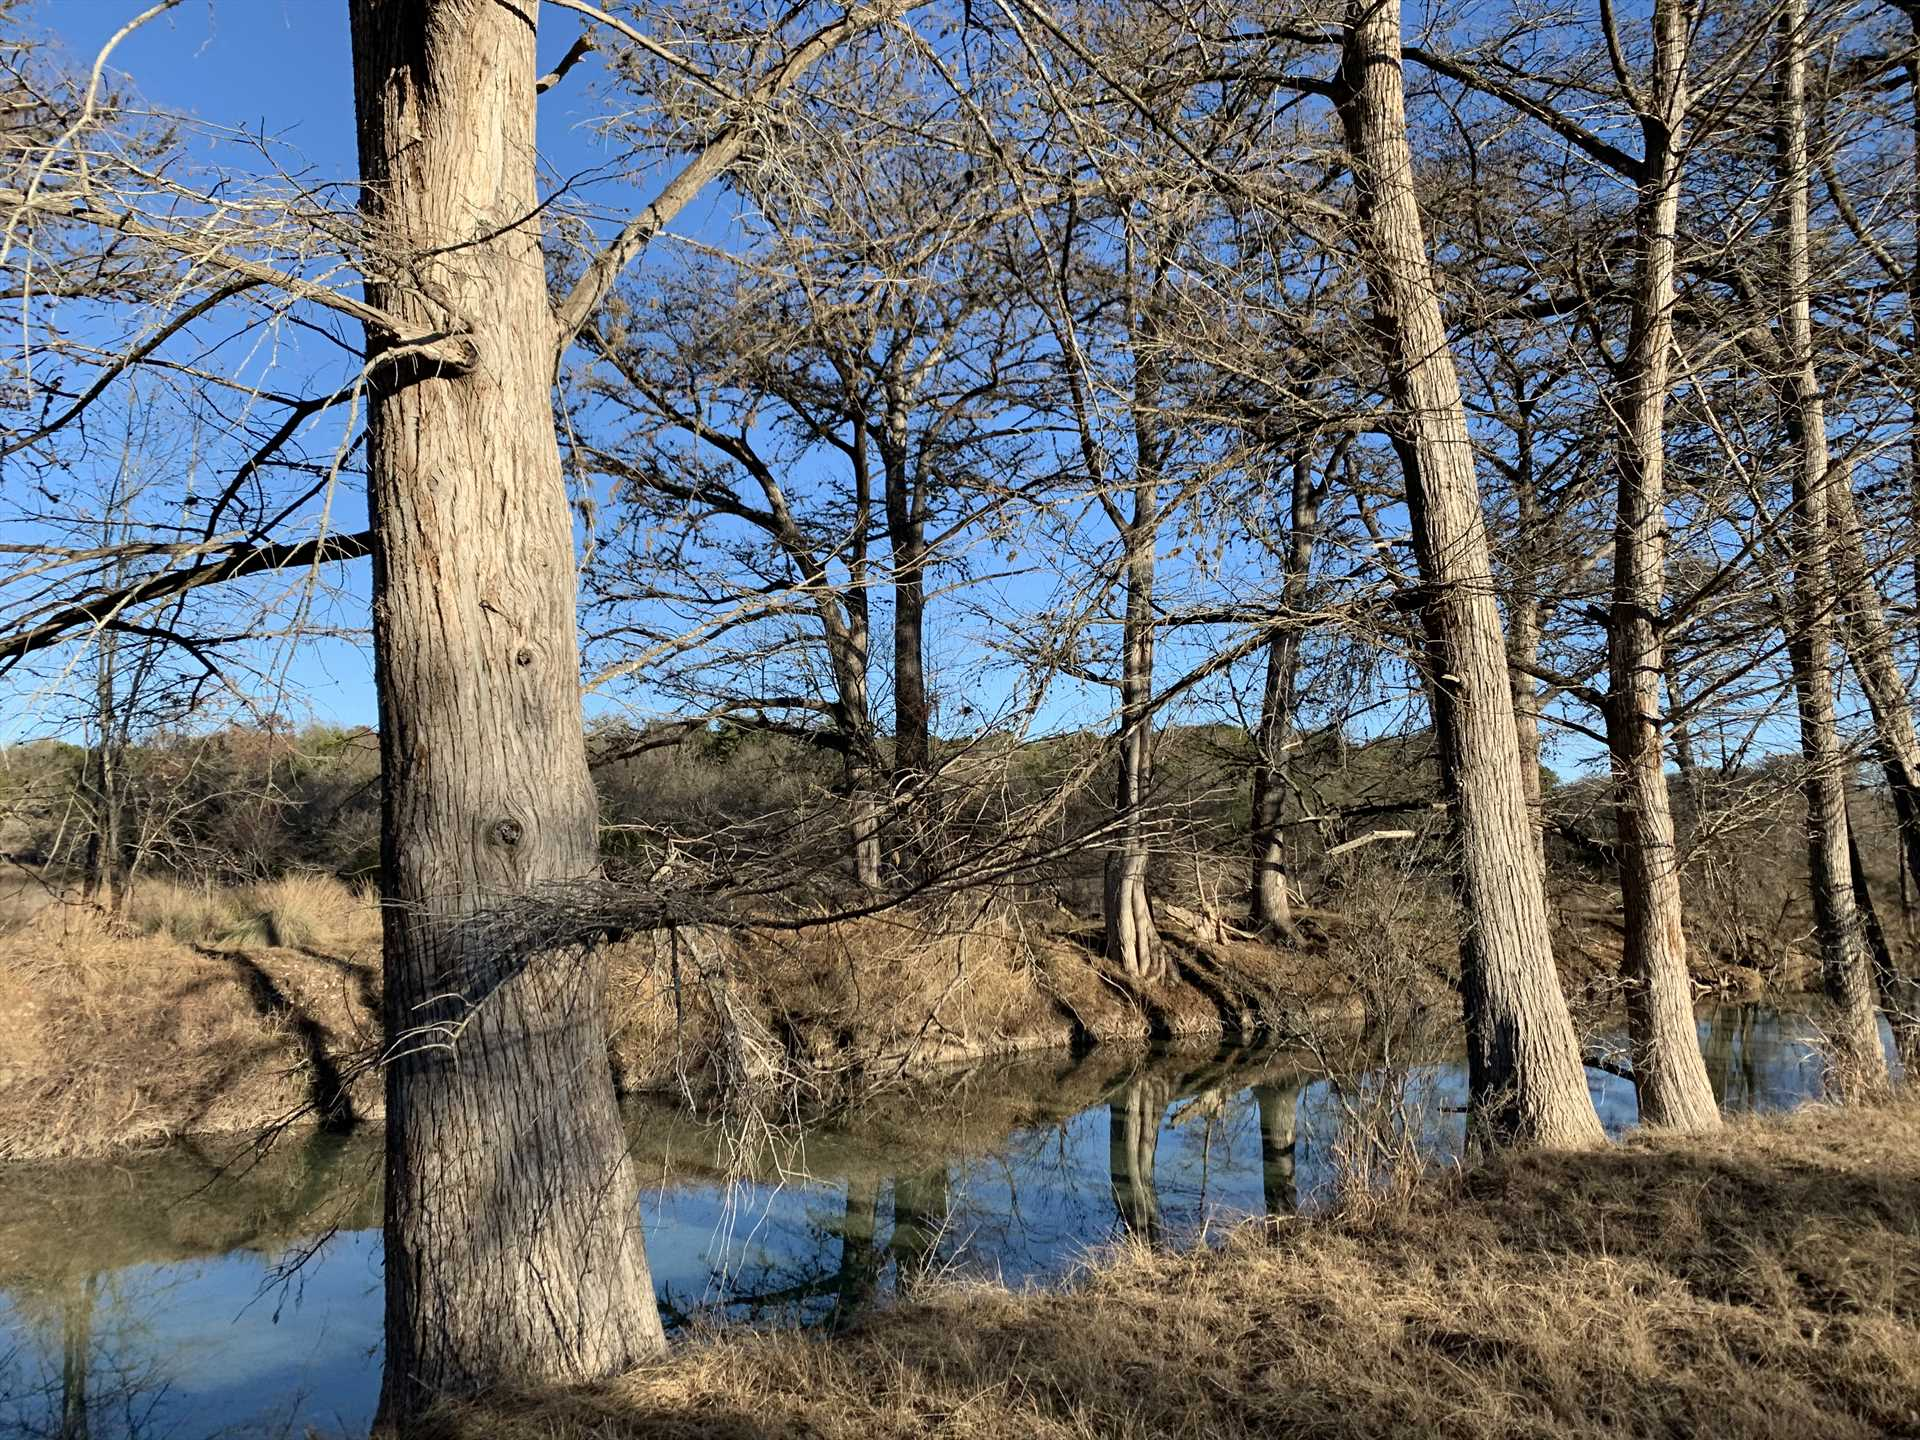 Fish, swim, and hike the tree-lined banks of the Medina! There's tons of wildlife here, and plenty of shady spots where you can clear your mind.